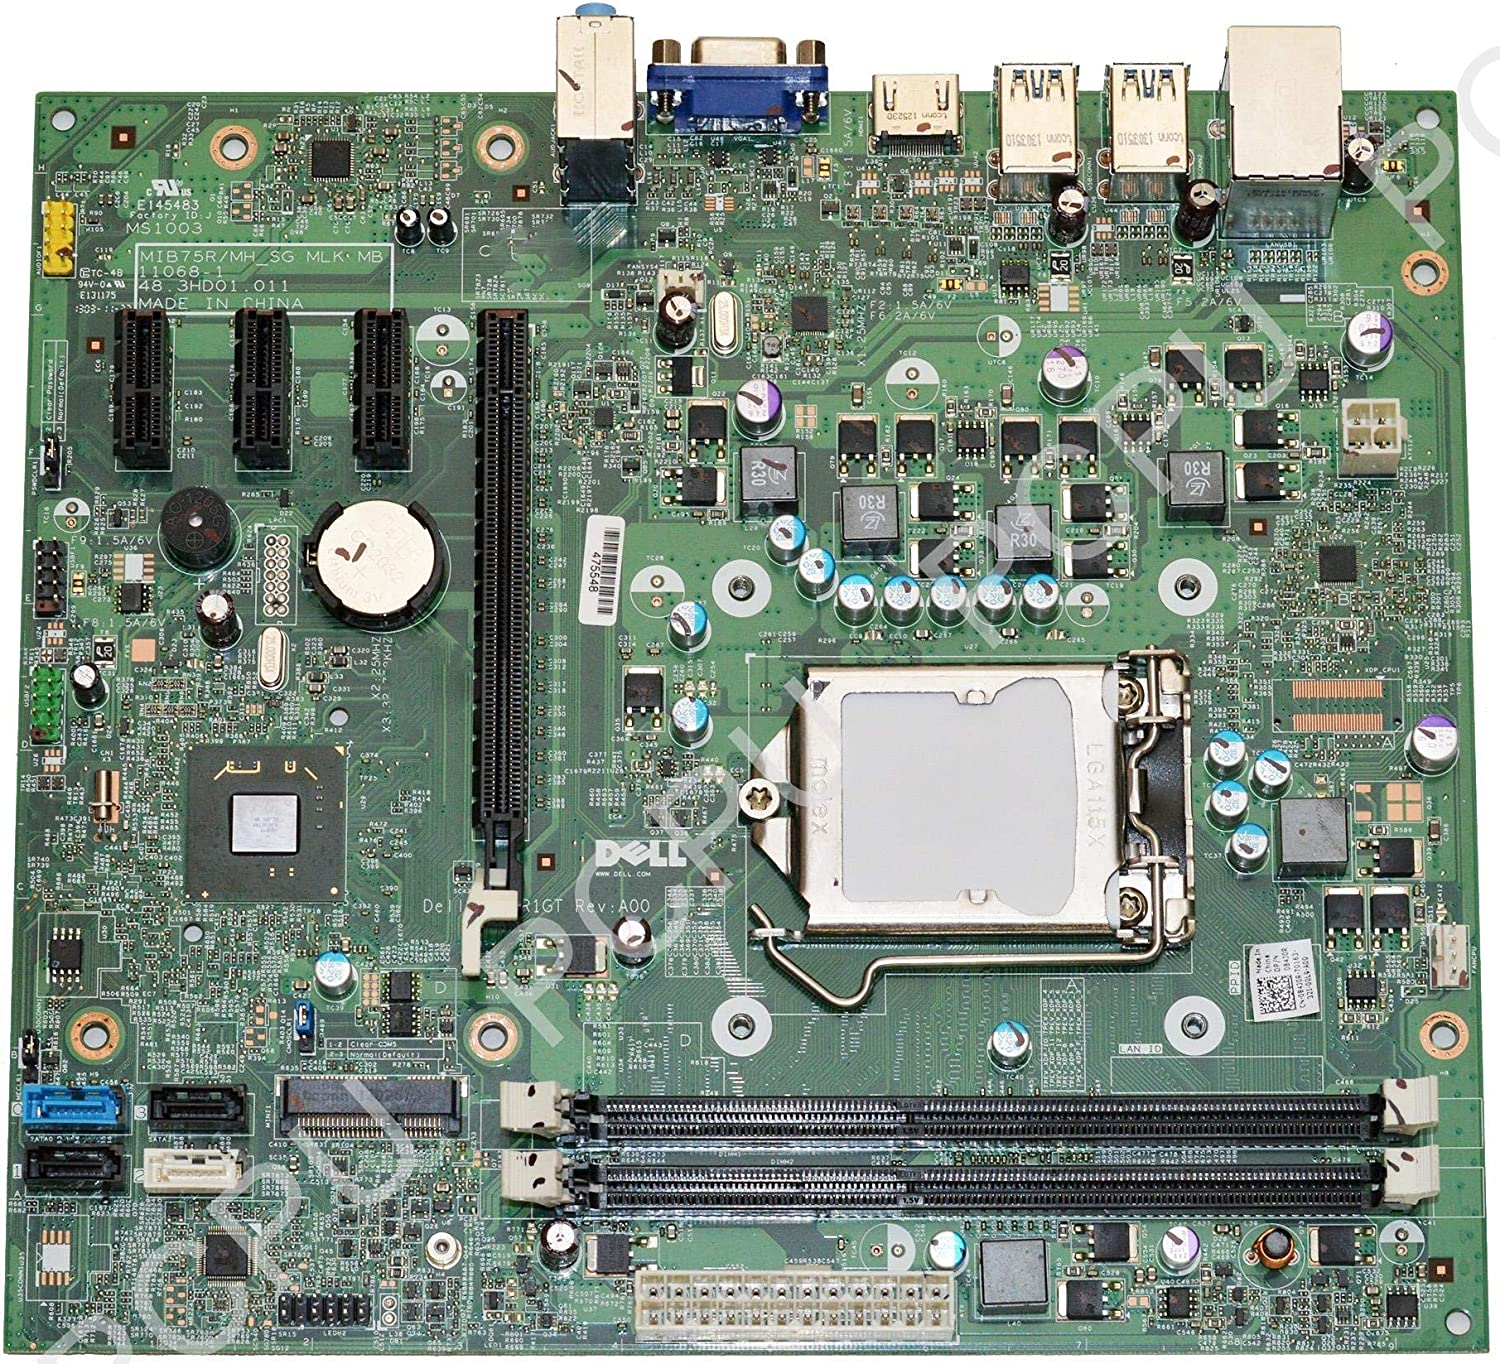 Dell Inspiron 660 Vostro 270 Intel Socket LGA1155 Desktop Motherboard 84J0R 084J0R (Renewed)